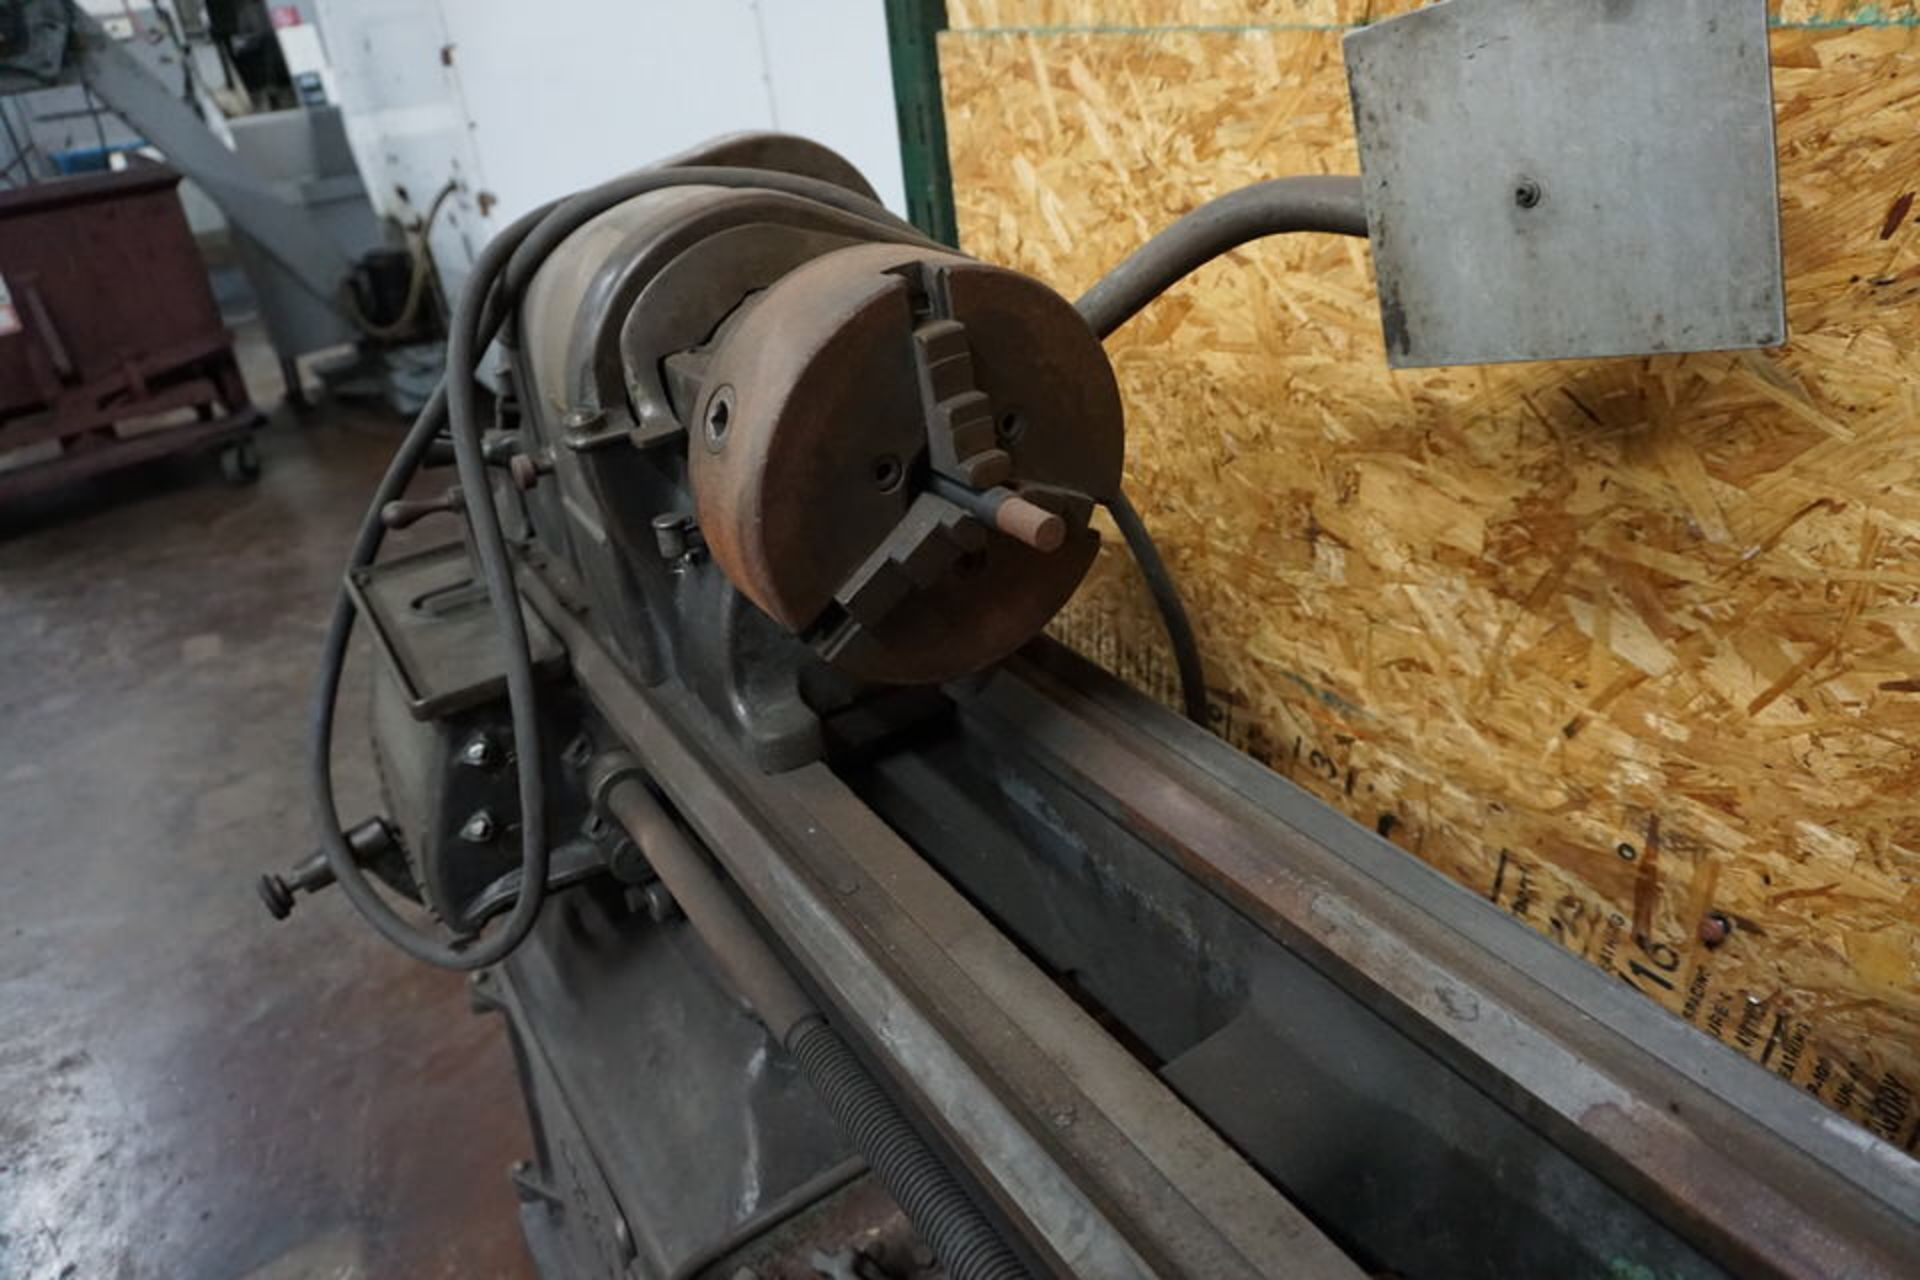 SOUTH BEND MANUAL LATHE W/ 3 JAW CHUCK, TOOPOST & TAILSTOCK - Image 2 of 5